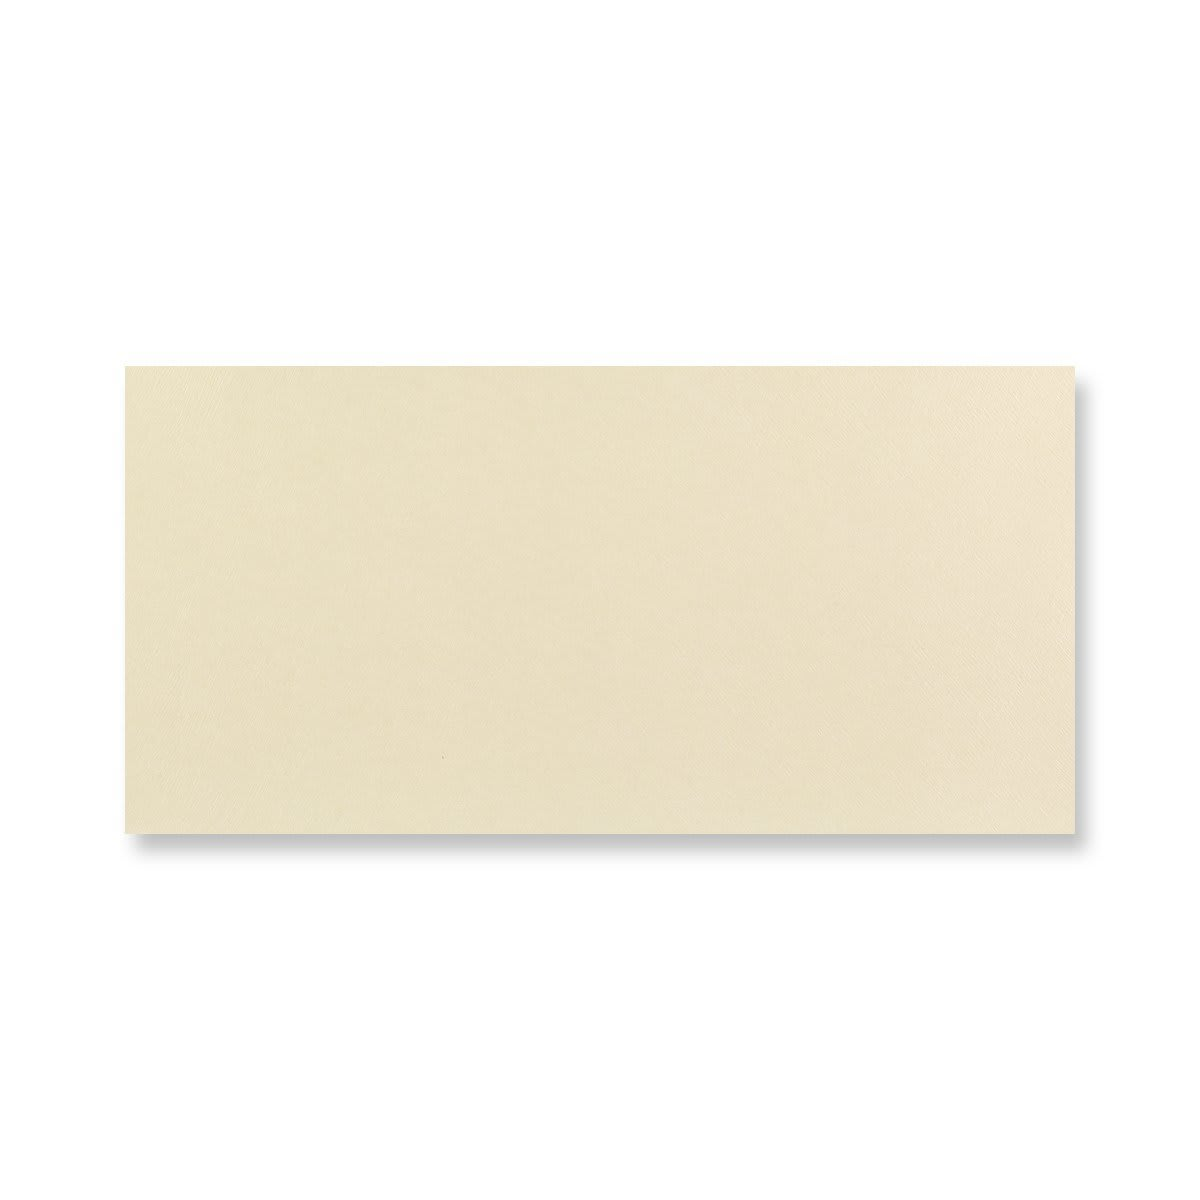 DL CHAMPAGNE BUTTERFLY ENVELOPES